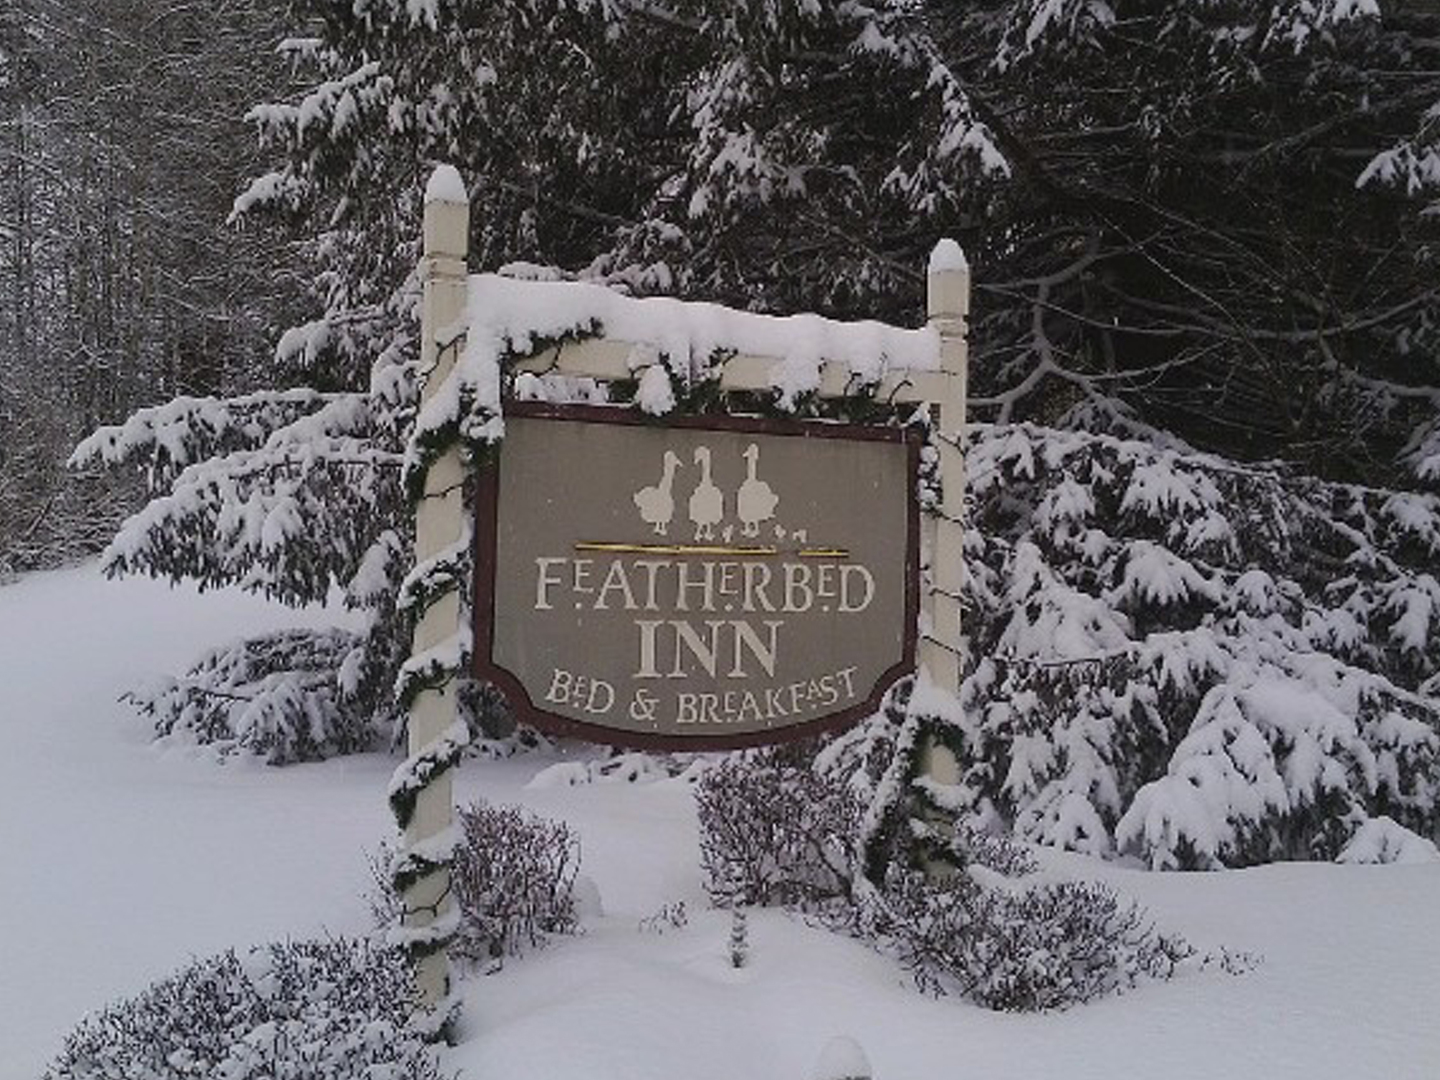 A sign on the side of a snow covered forest at Featherbed Inn.